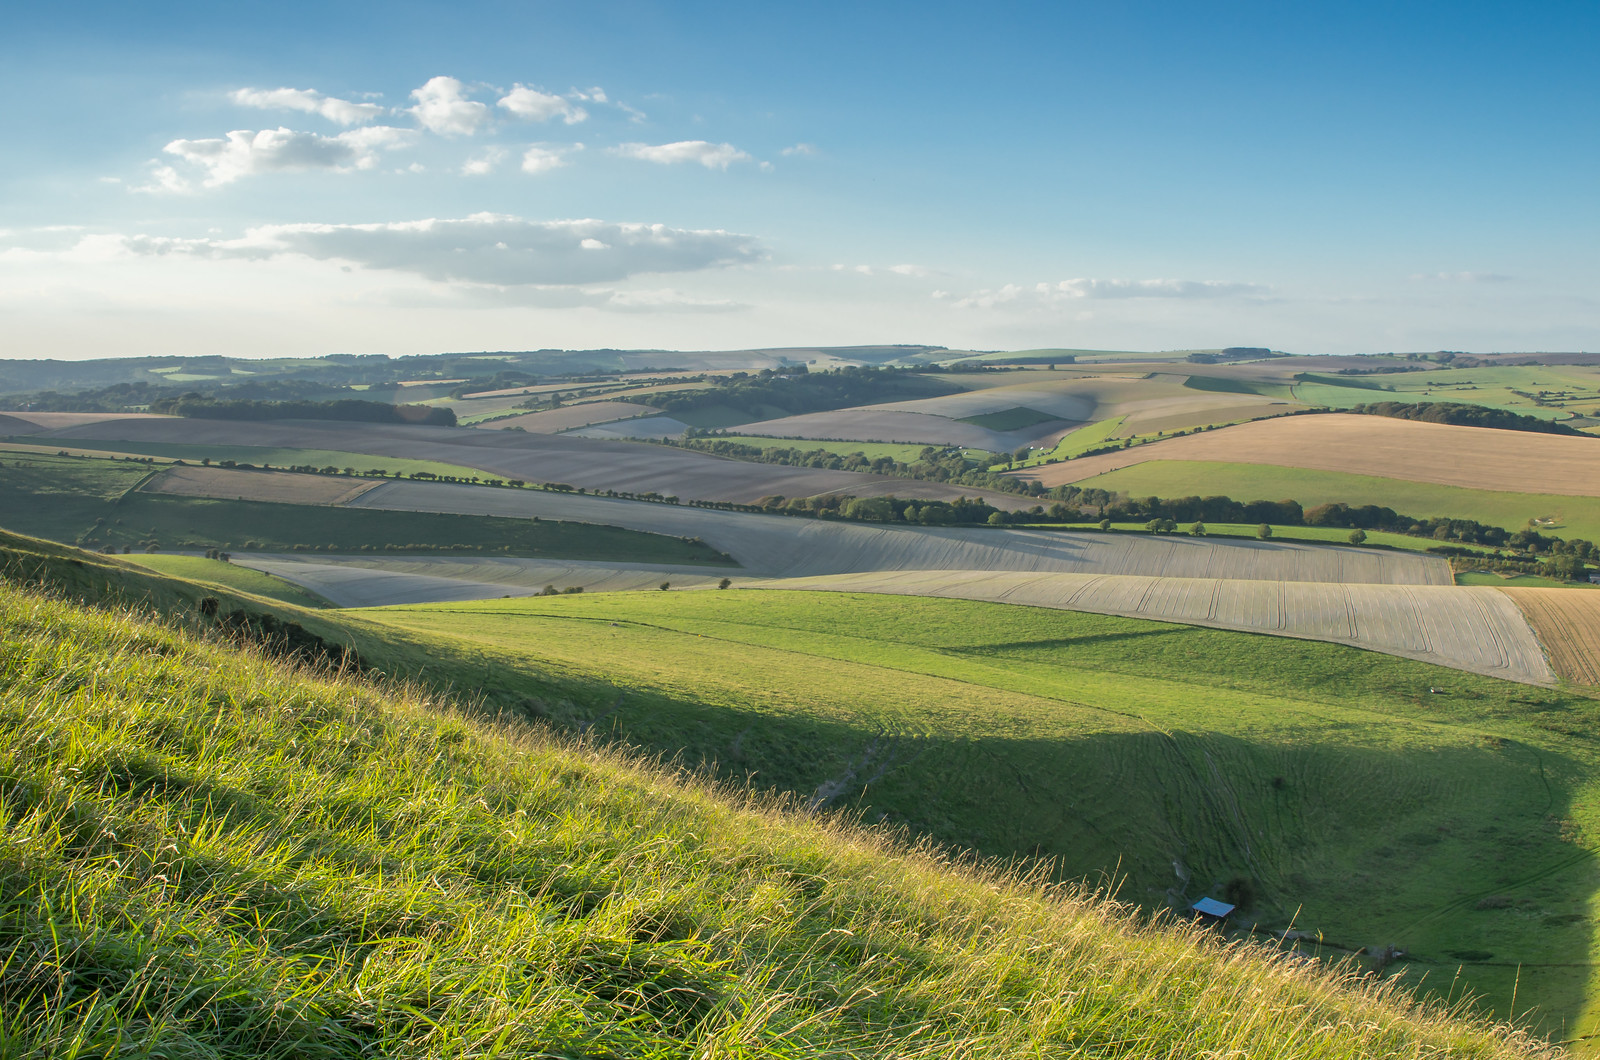 The South Downs Way Looking West. Kingston near Lewes. Late afternoon, first days of the last autumn.